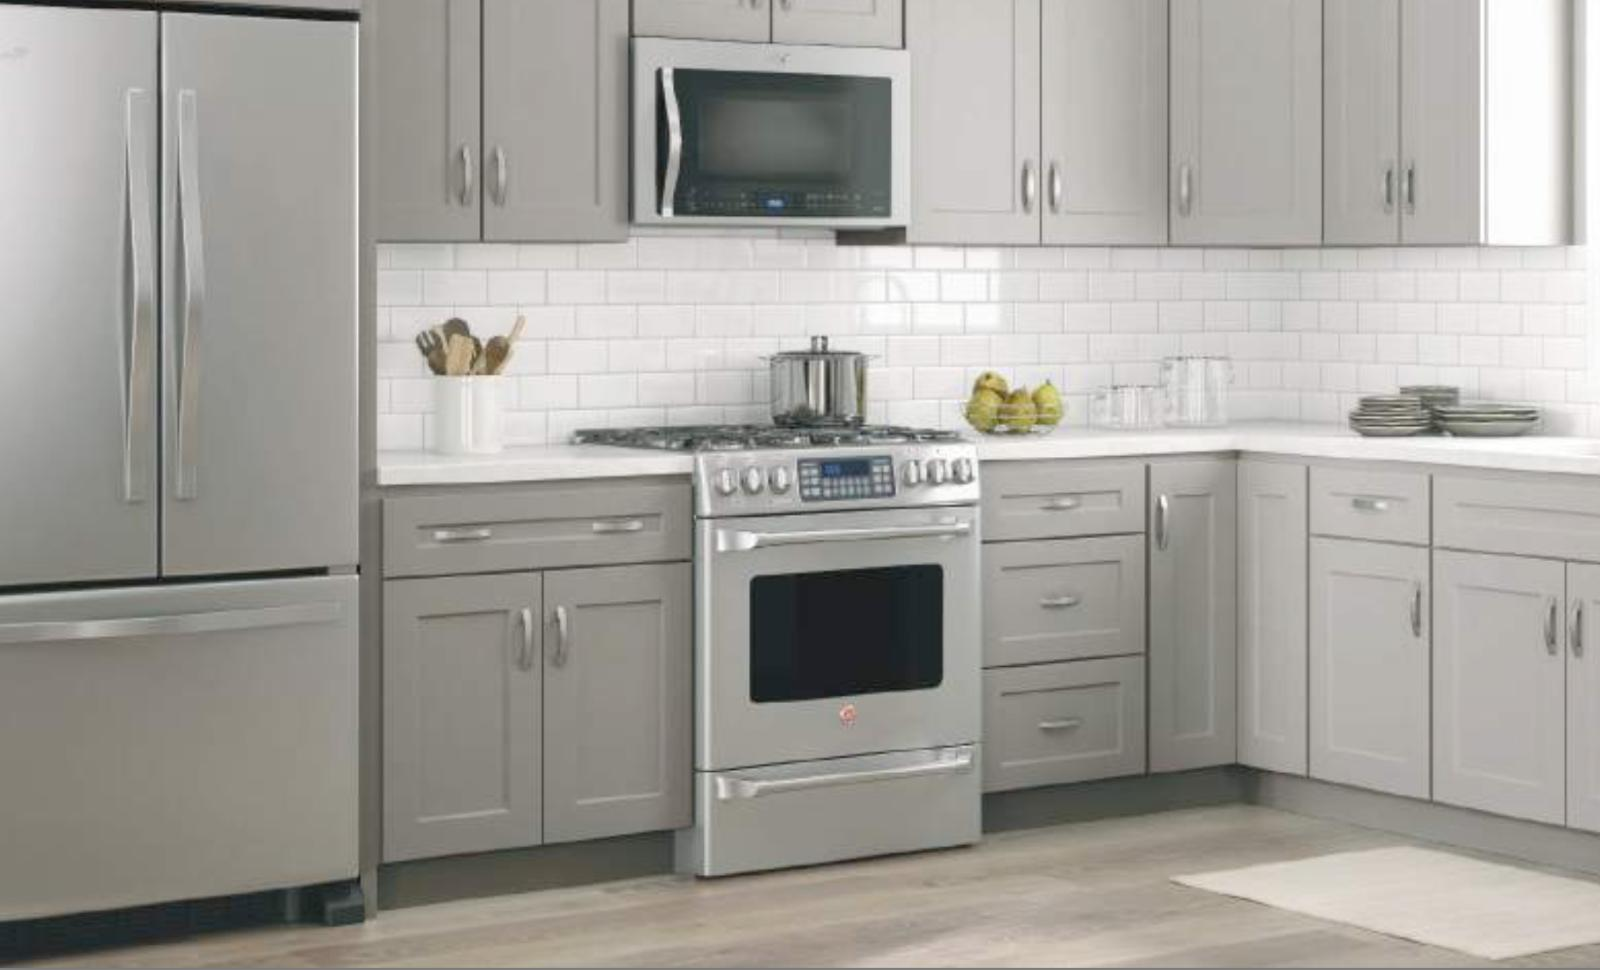 10x10 kitchen cabinets fully built choice of